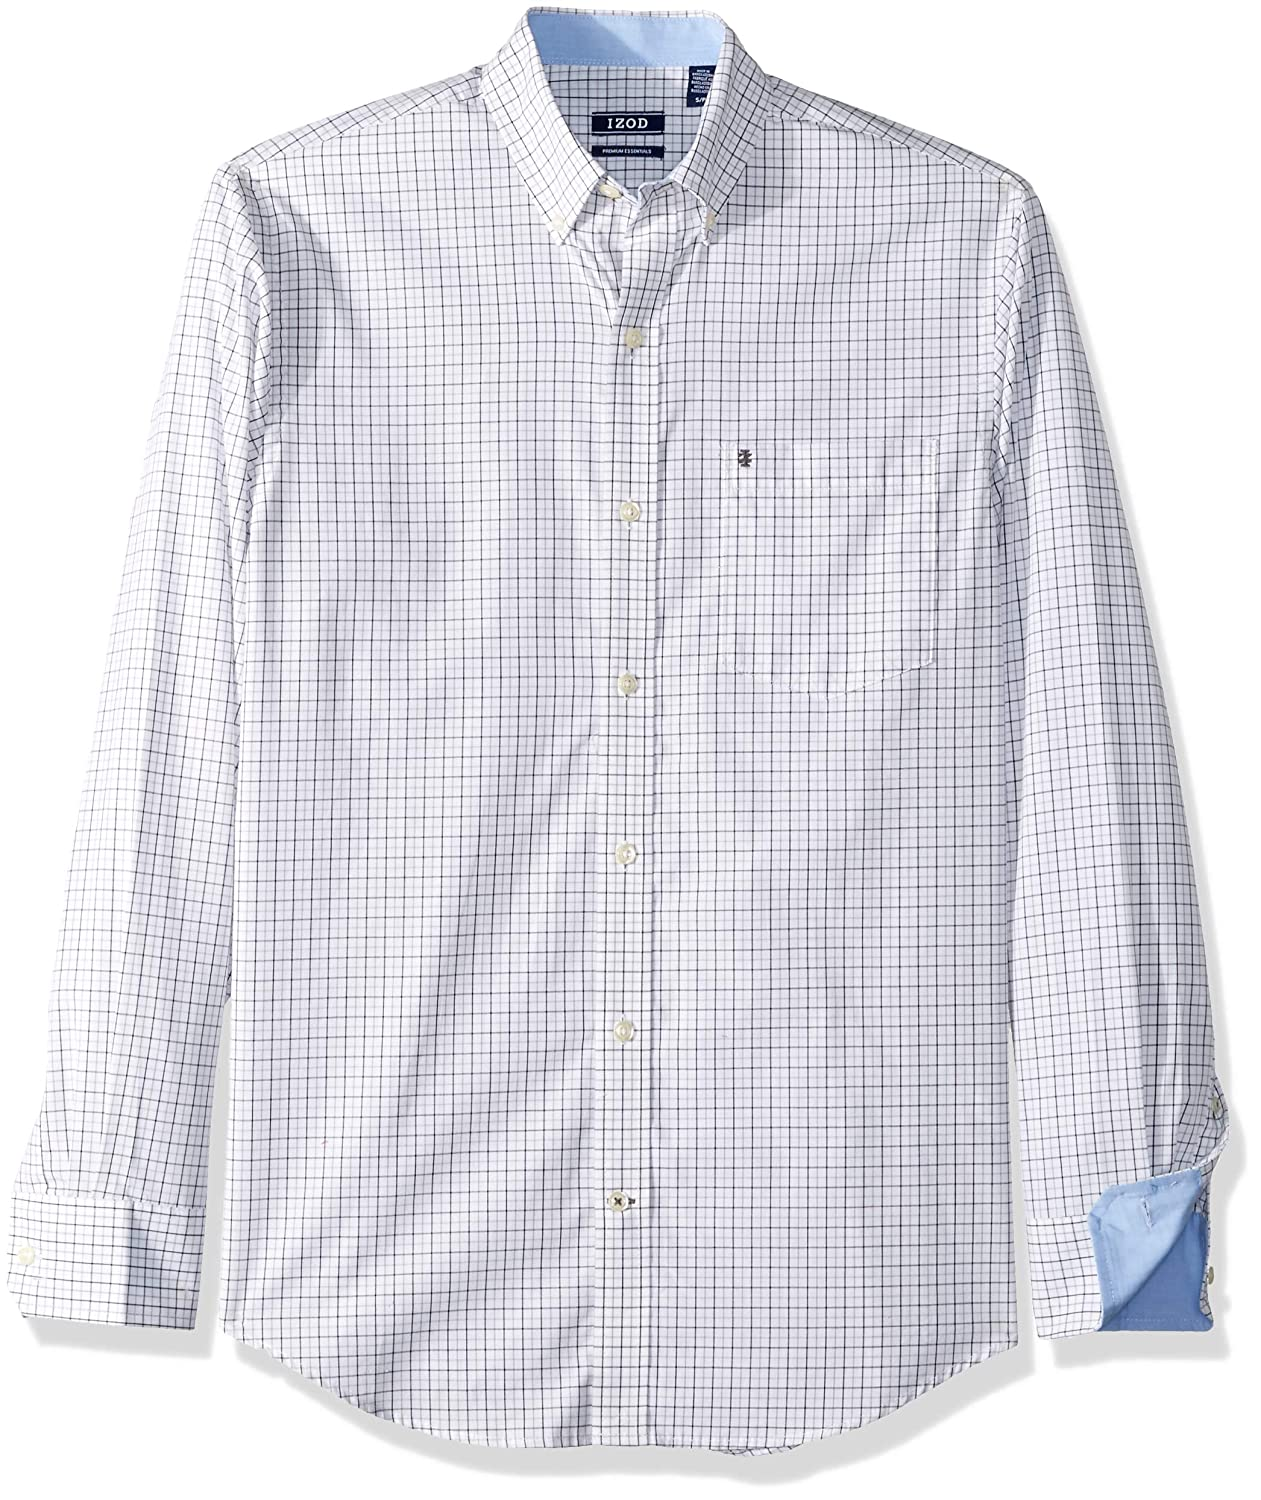 IZOD Mens Button Down Long Sleeve Stretch Performance Tattersal Shirt